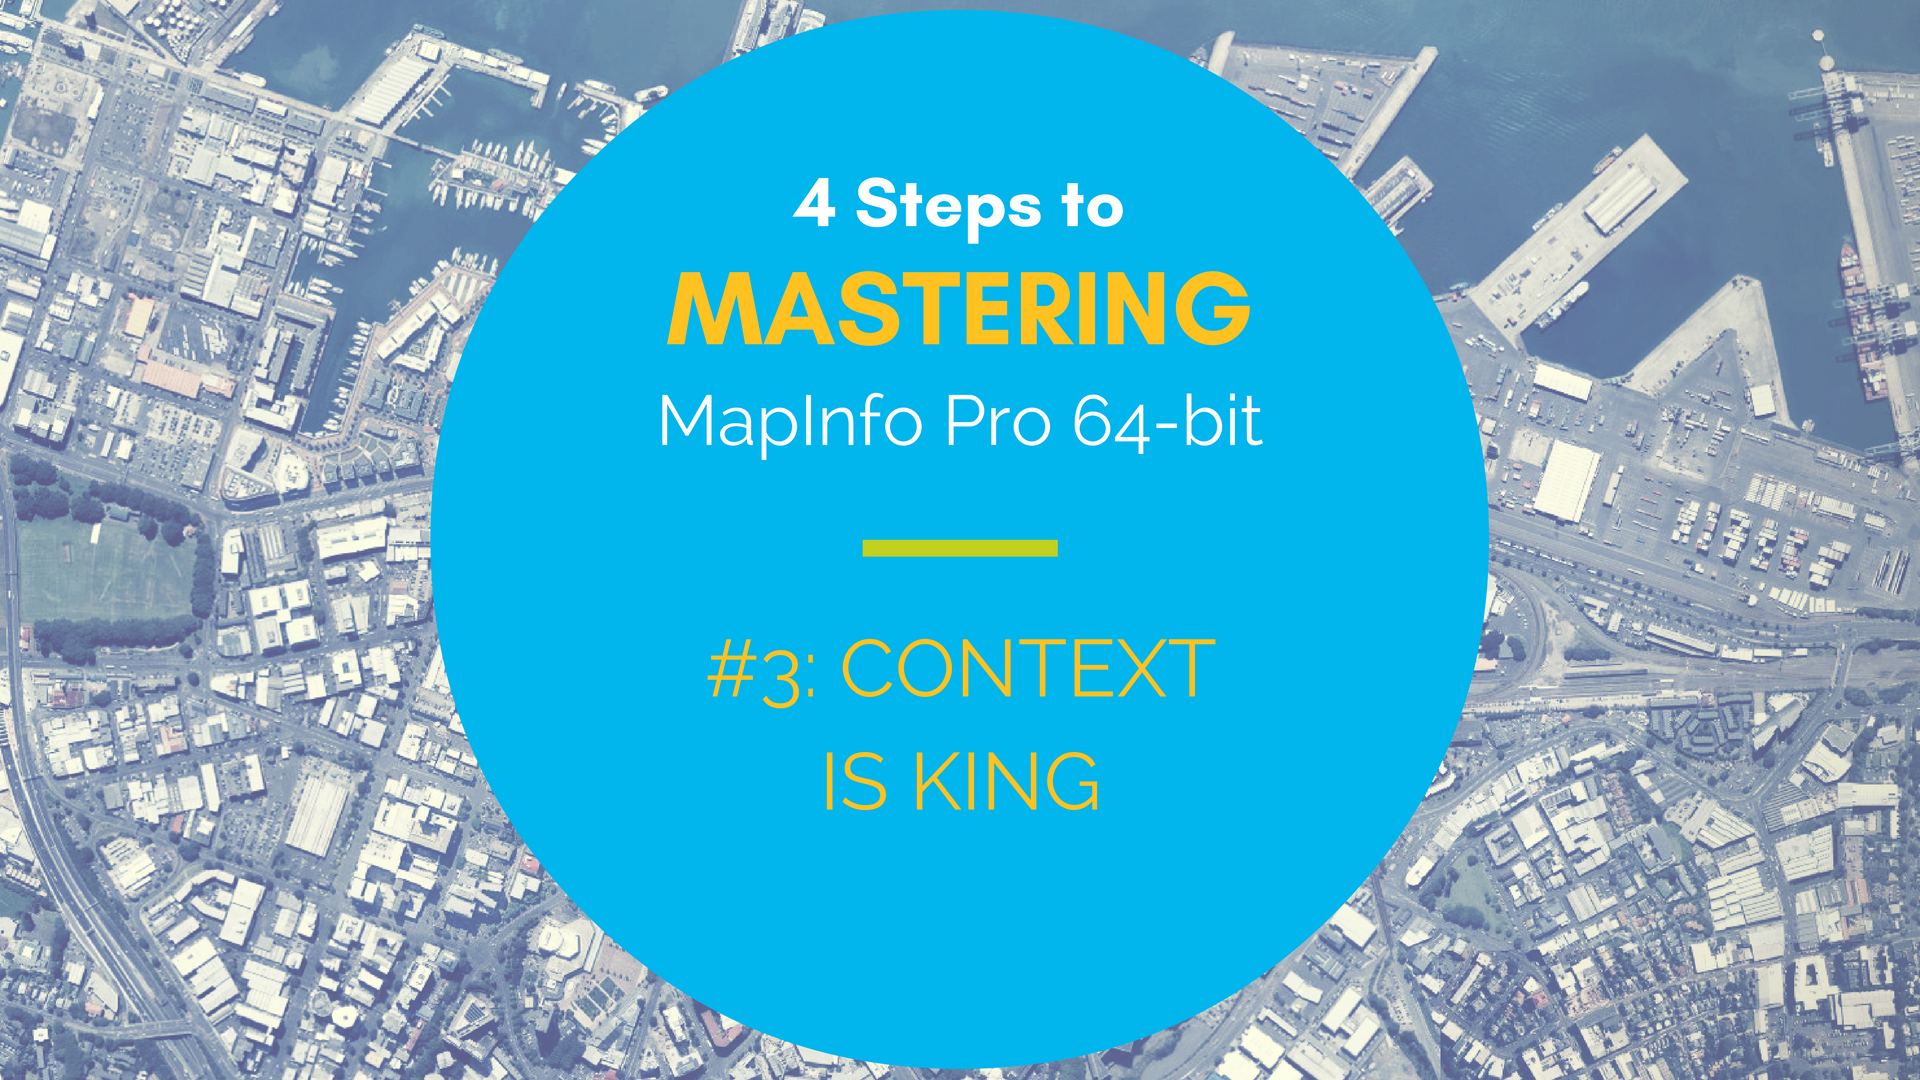 Mastering MapInfo Pro 64-bit - #3 Context is King